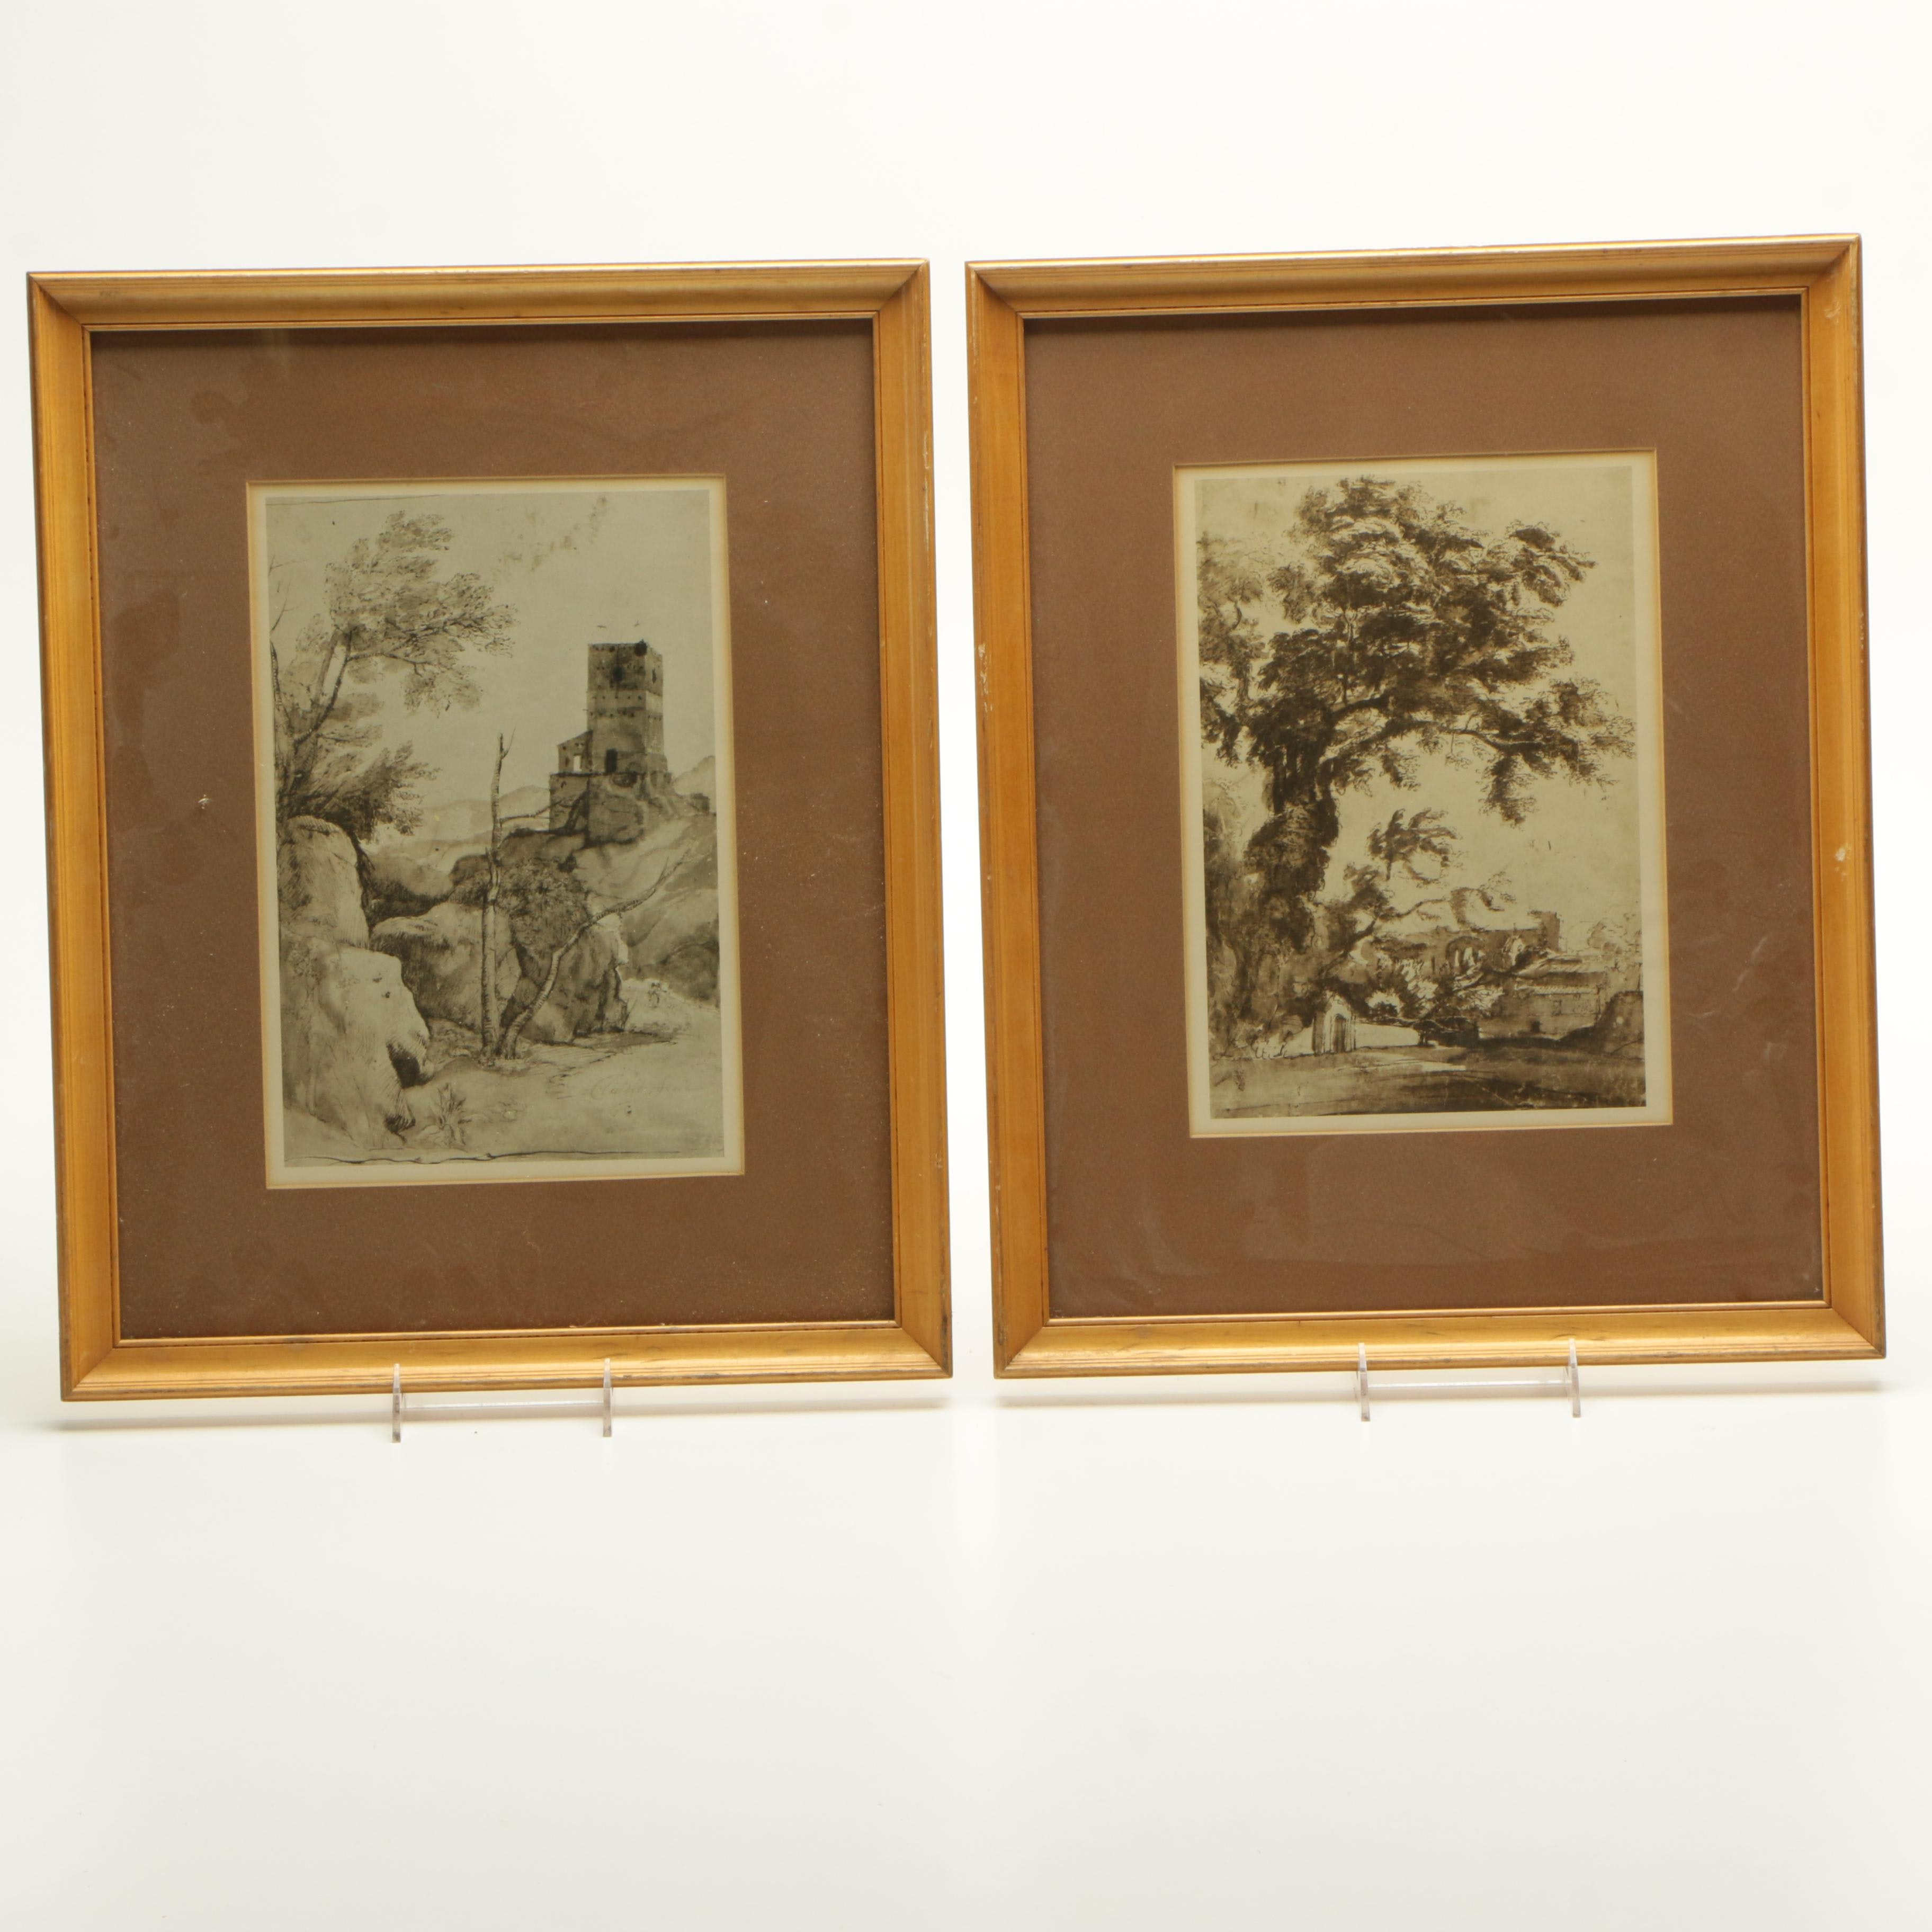 Two Offset Lithographs of Architectural Scenes